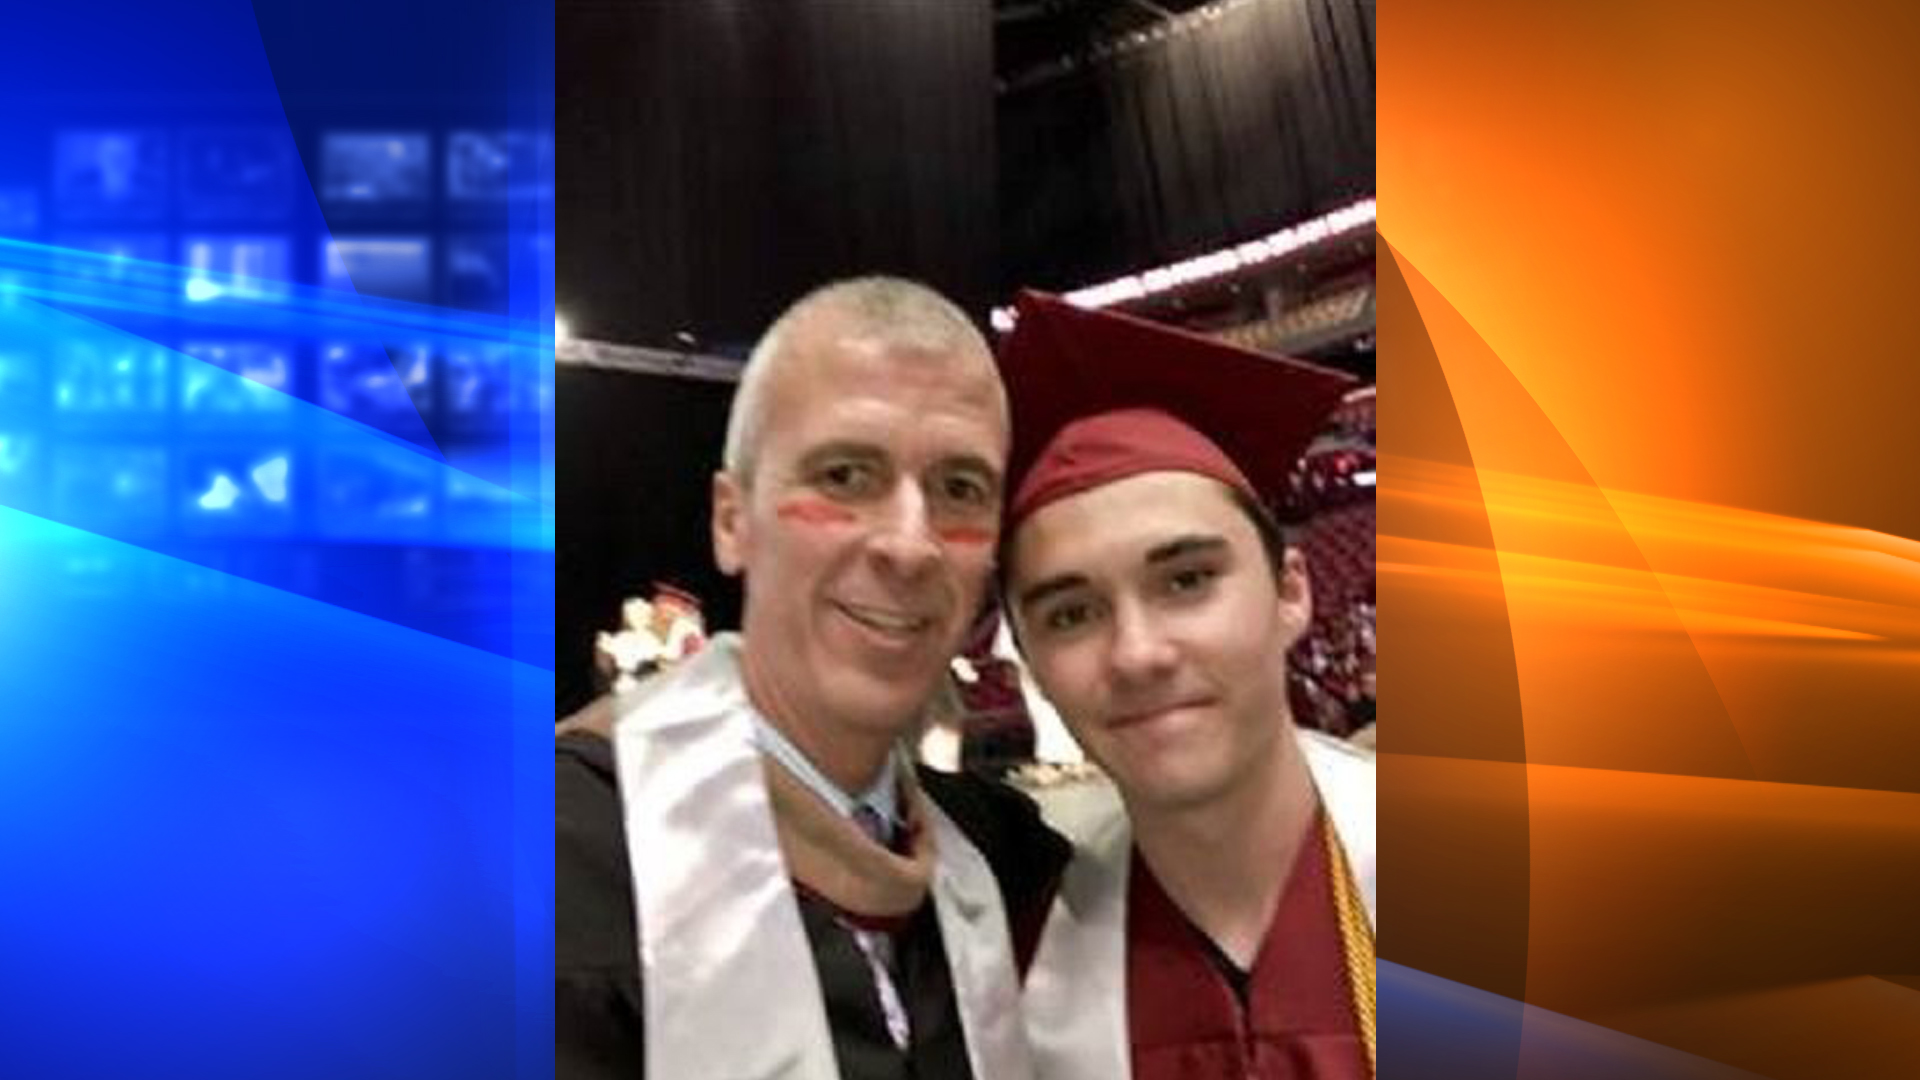 Marjory Stoneman Douglas High School graduation grand marshal Jeff Foster takes a selfie with student David Hogg on June 3, 3018. (Credit: Jeff Foster via CNN)